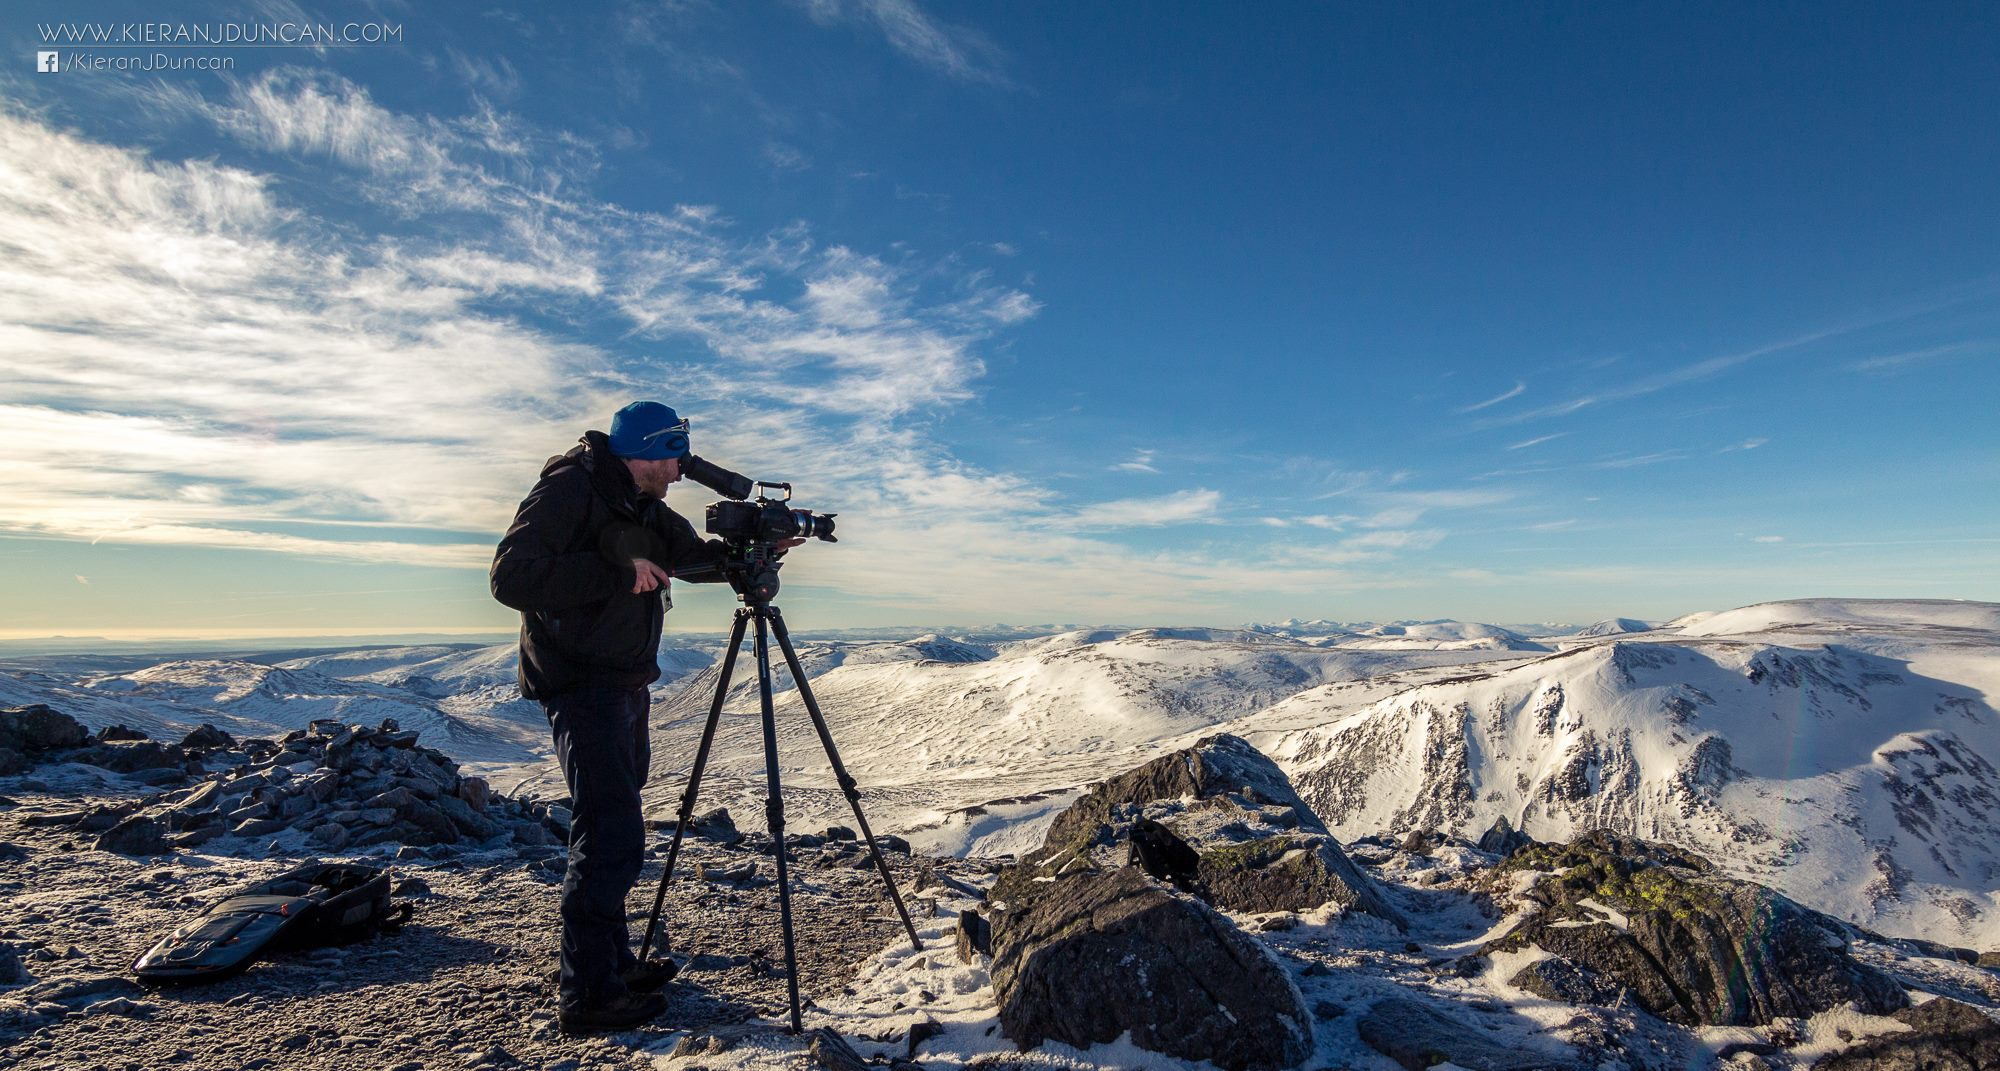 Morrocco Media filming at Glenshee